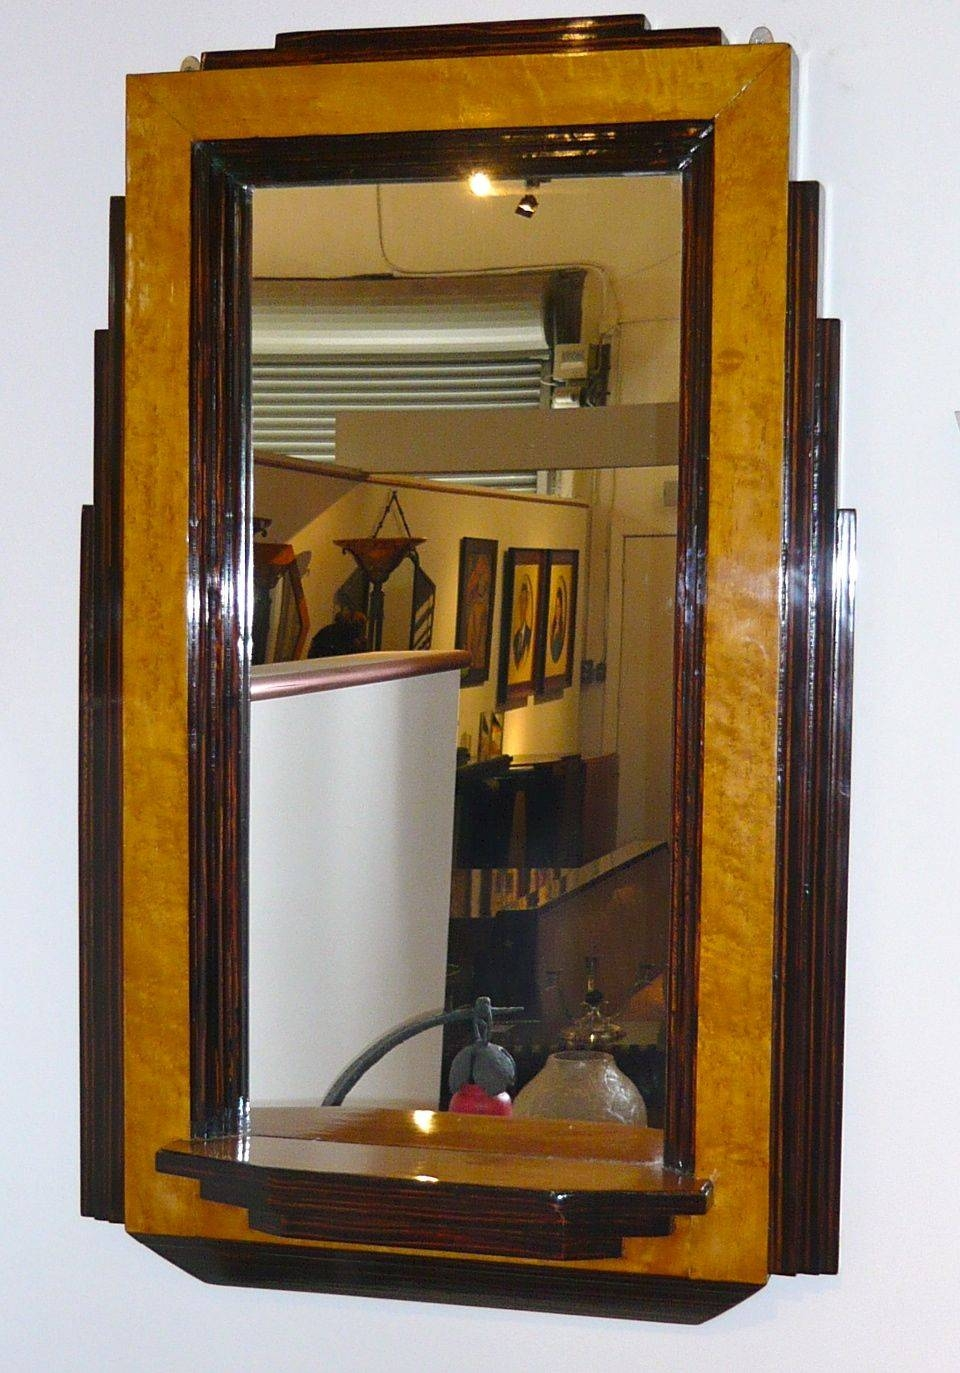 Art Deco Mirrors For Sale | Art Deco Collection intended for Antique Art Deco Mirrors (Image 15 of 25)